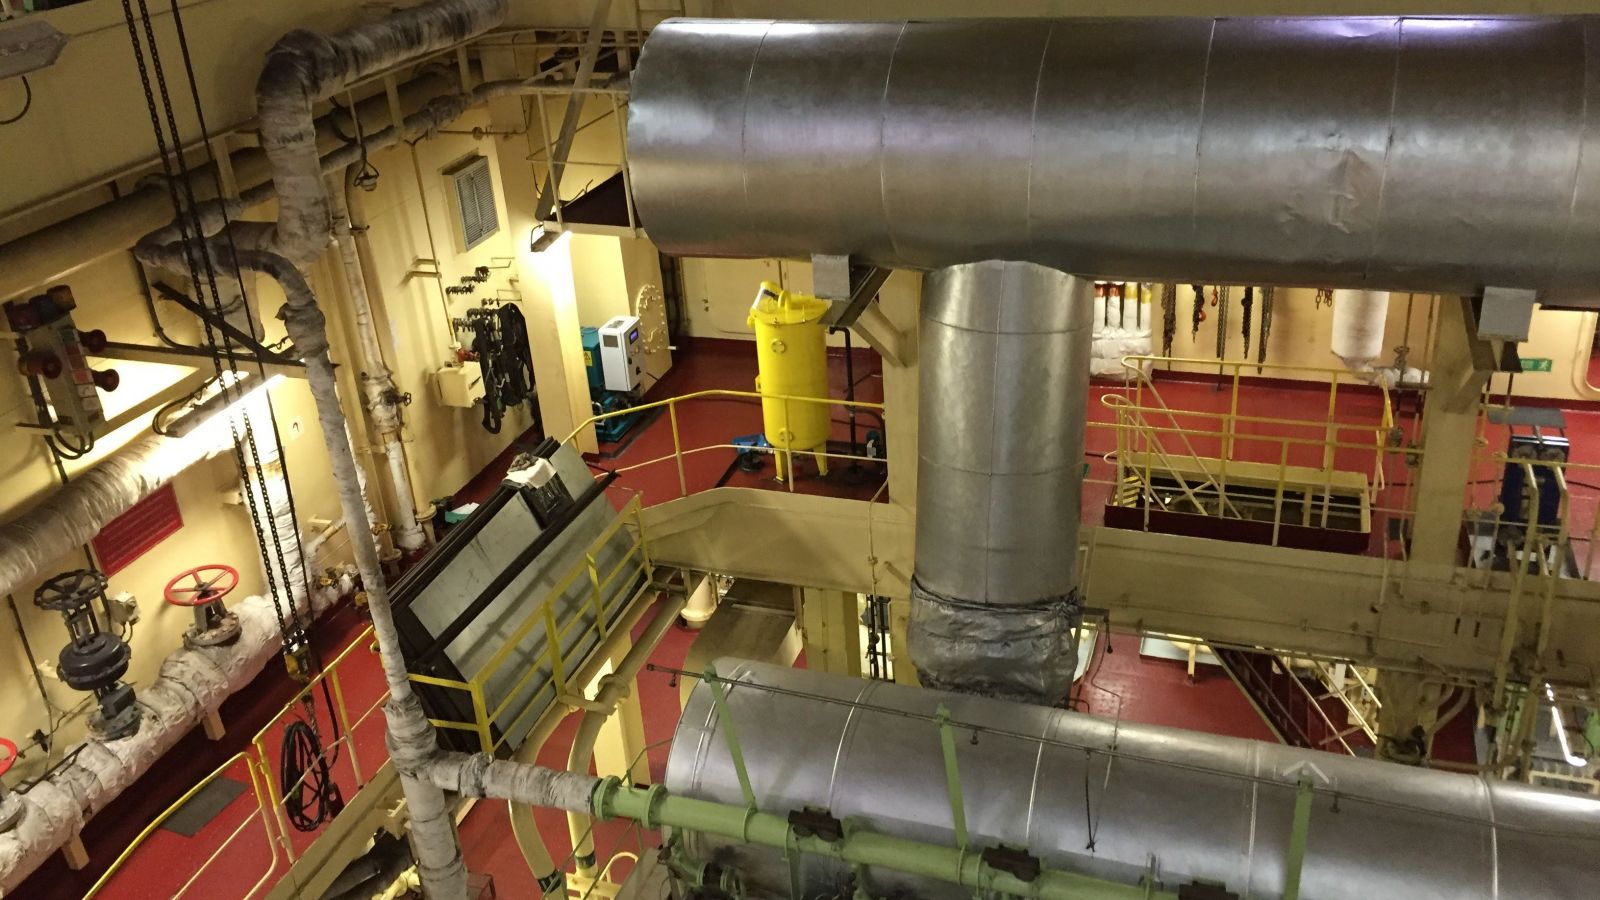 Maersk Engine Room